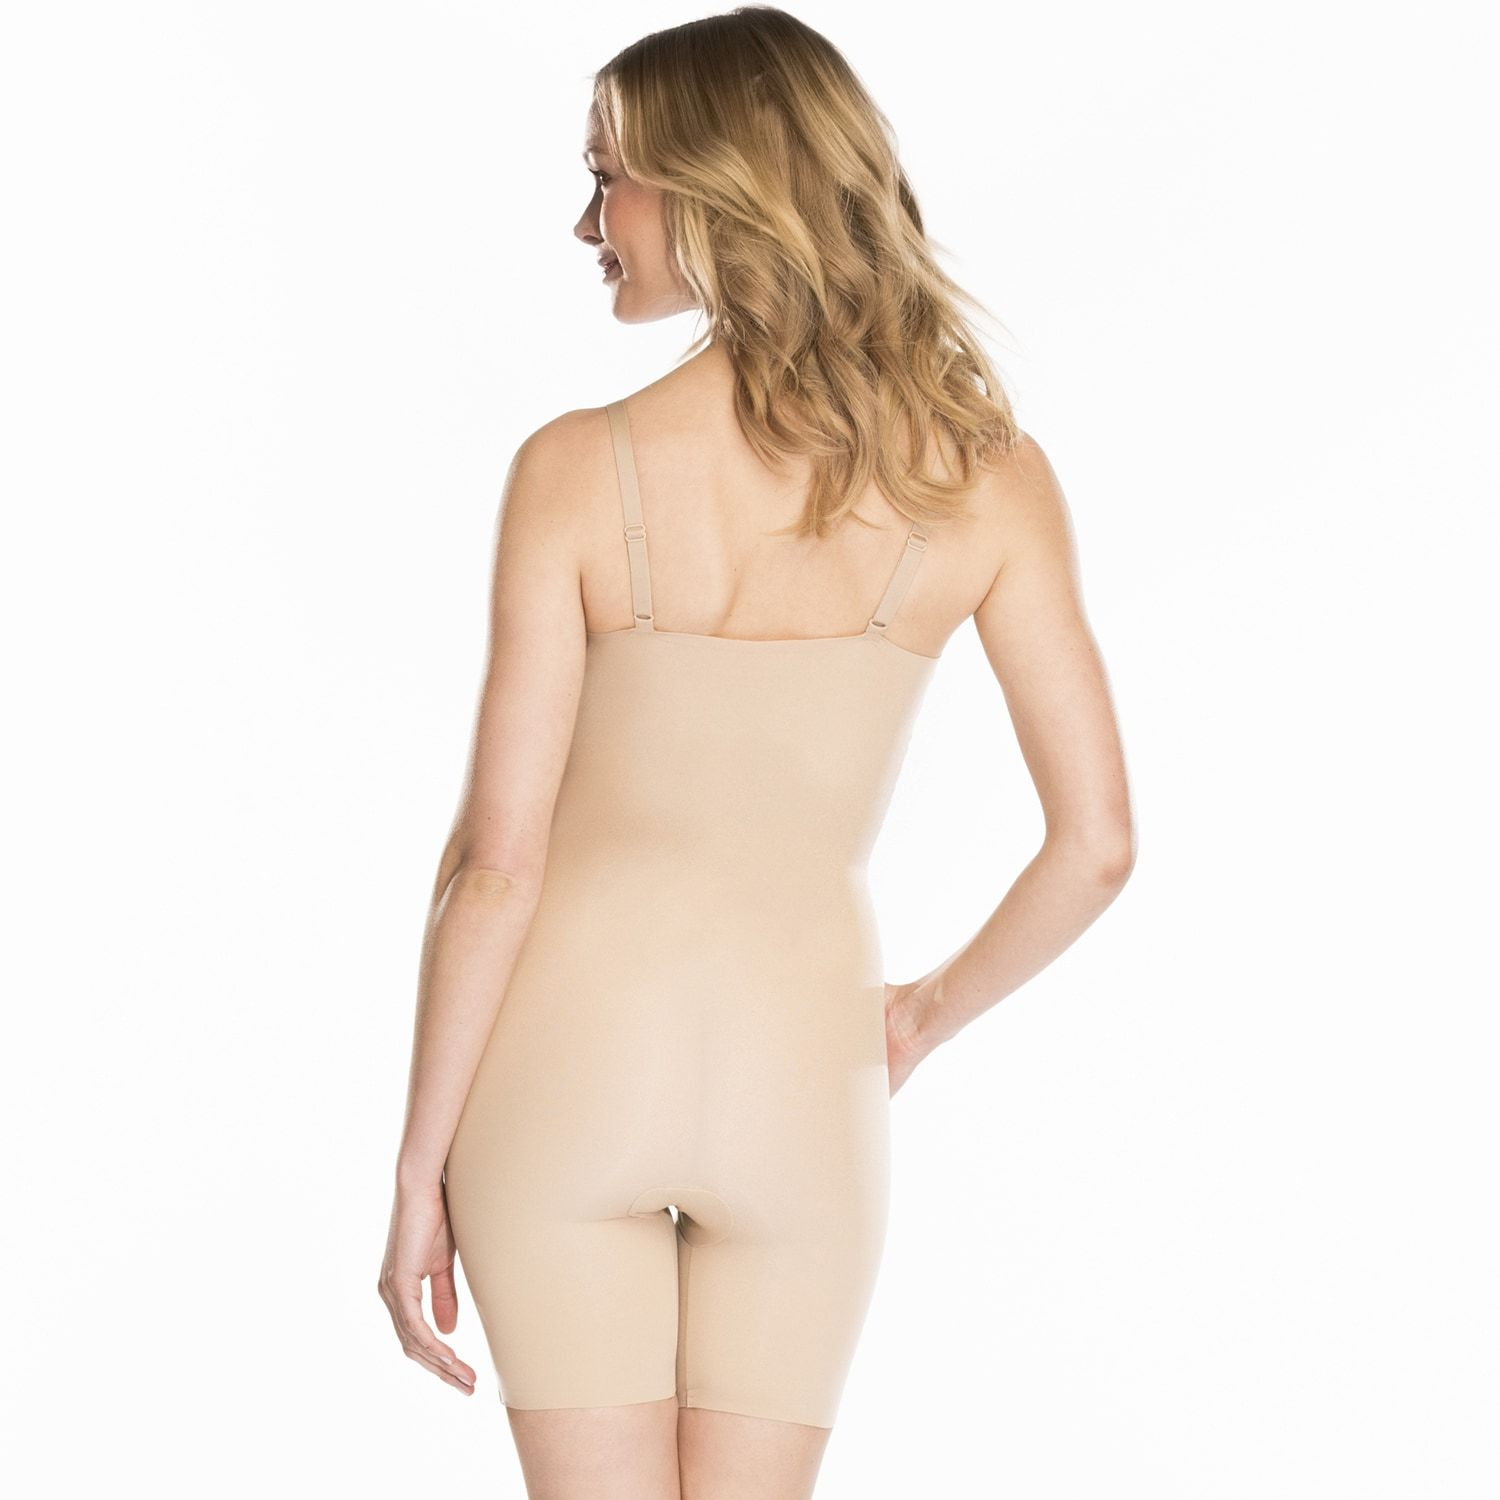 5133456d7bbc5 Red Hot by Spanx Clever Controllers Mid-Thigh Body Shaper SS3515 - Women s   Clever